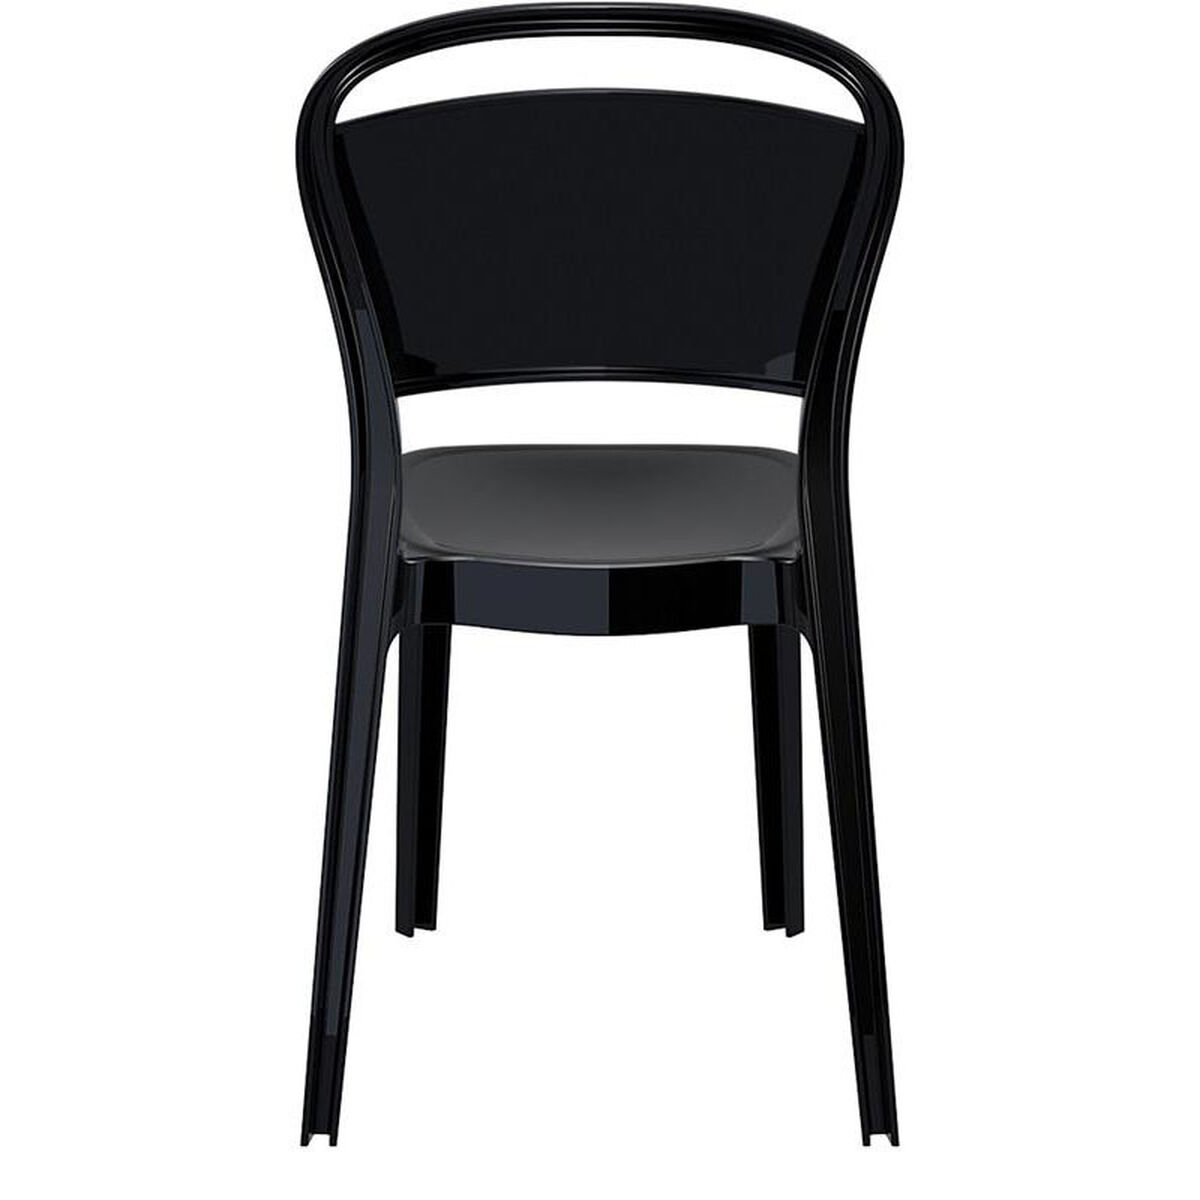 polycarbonate furniture. Our Bo Modern Polycarbonate Dining Chair - Glossy Black Is On Sale Now. Furniture I